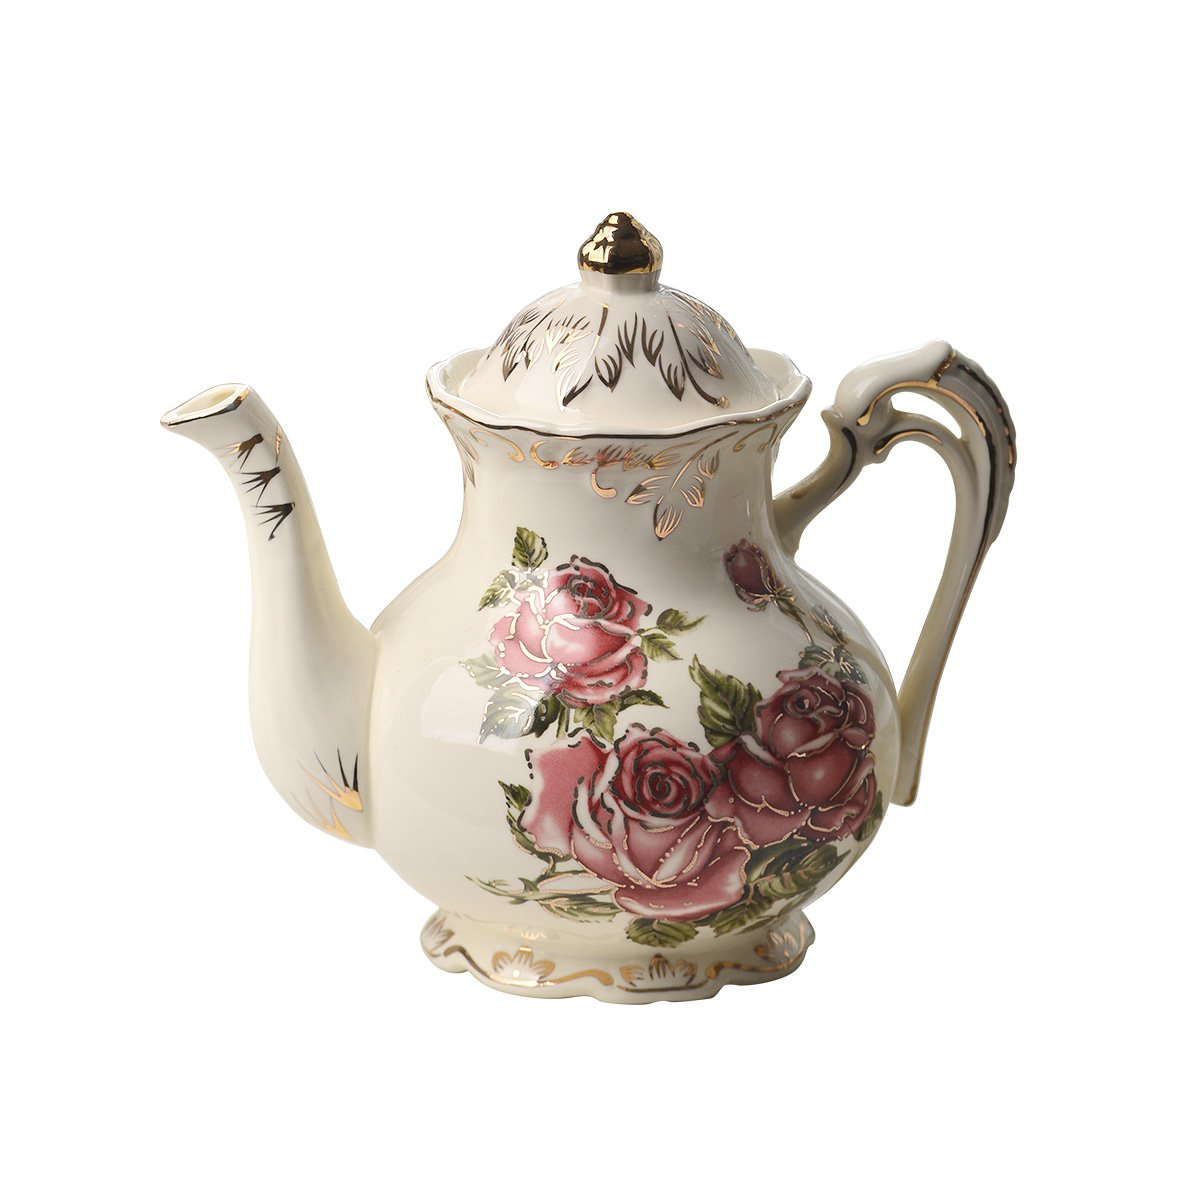 Red Rose Pattern Ivory Ceramic Vintage Tea Pot With Golden Leaves Edge,29oz,Ladyrose Gifts Idea YOLIFE